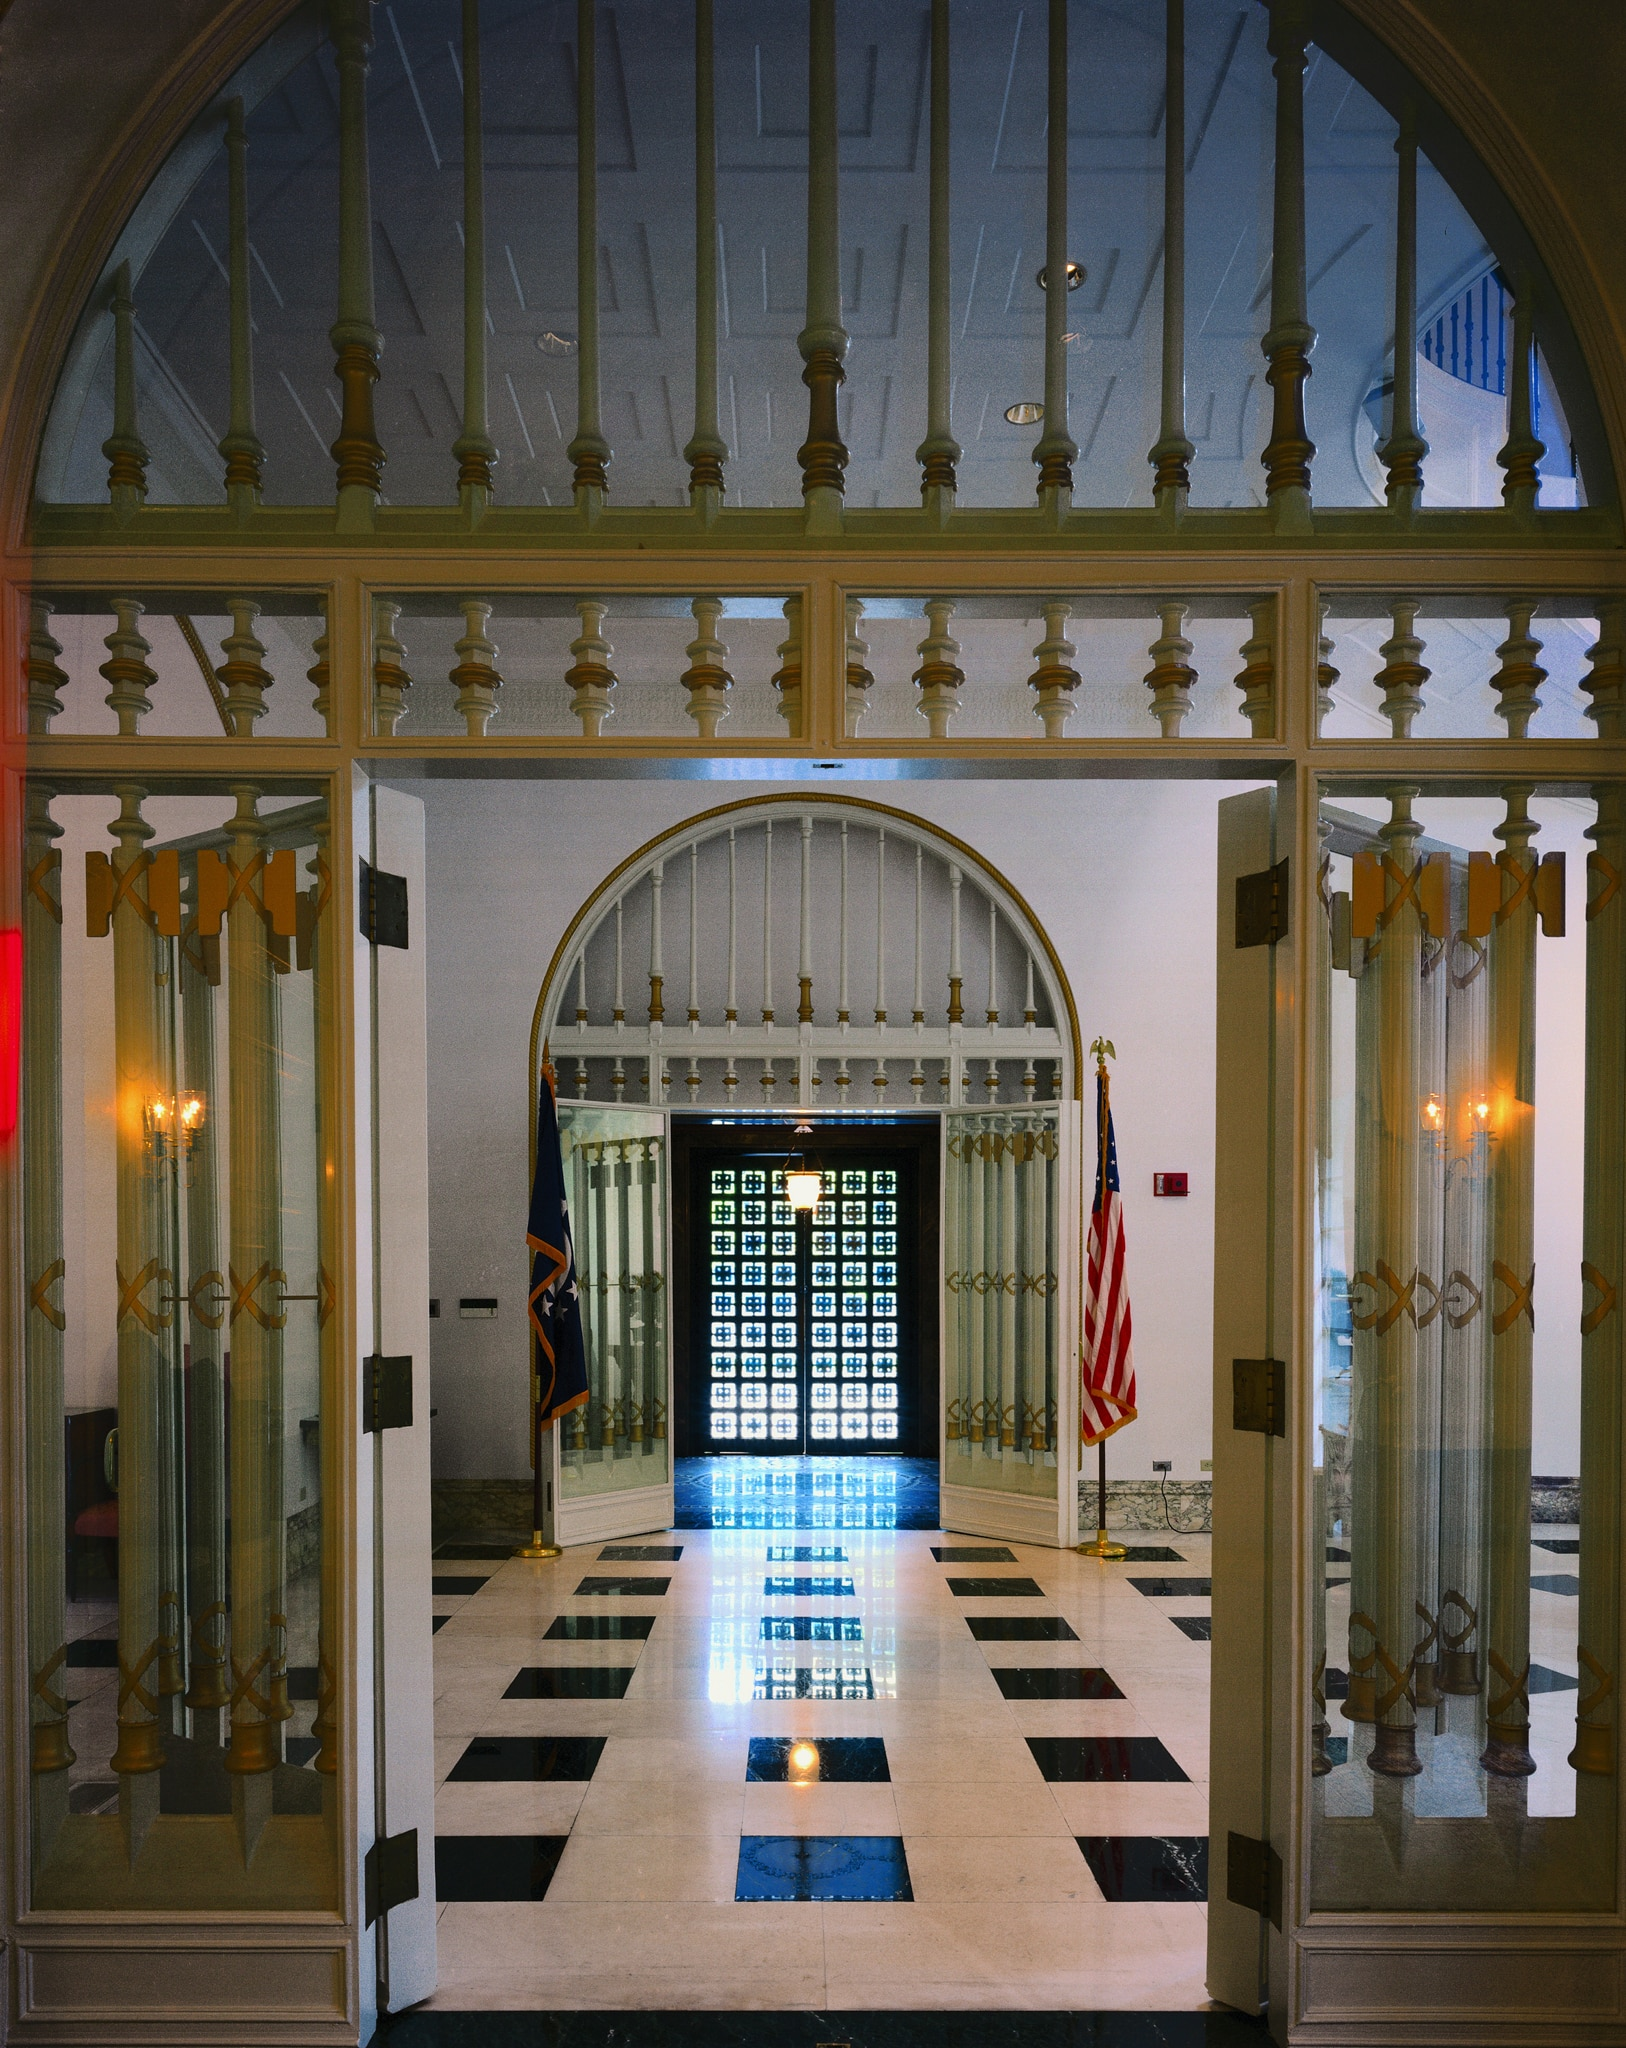 Entryway with glass-enclosed bronze columns, large tiled floor and lattice of glass panels at end of hall (State Dept.)